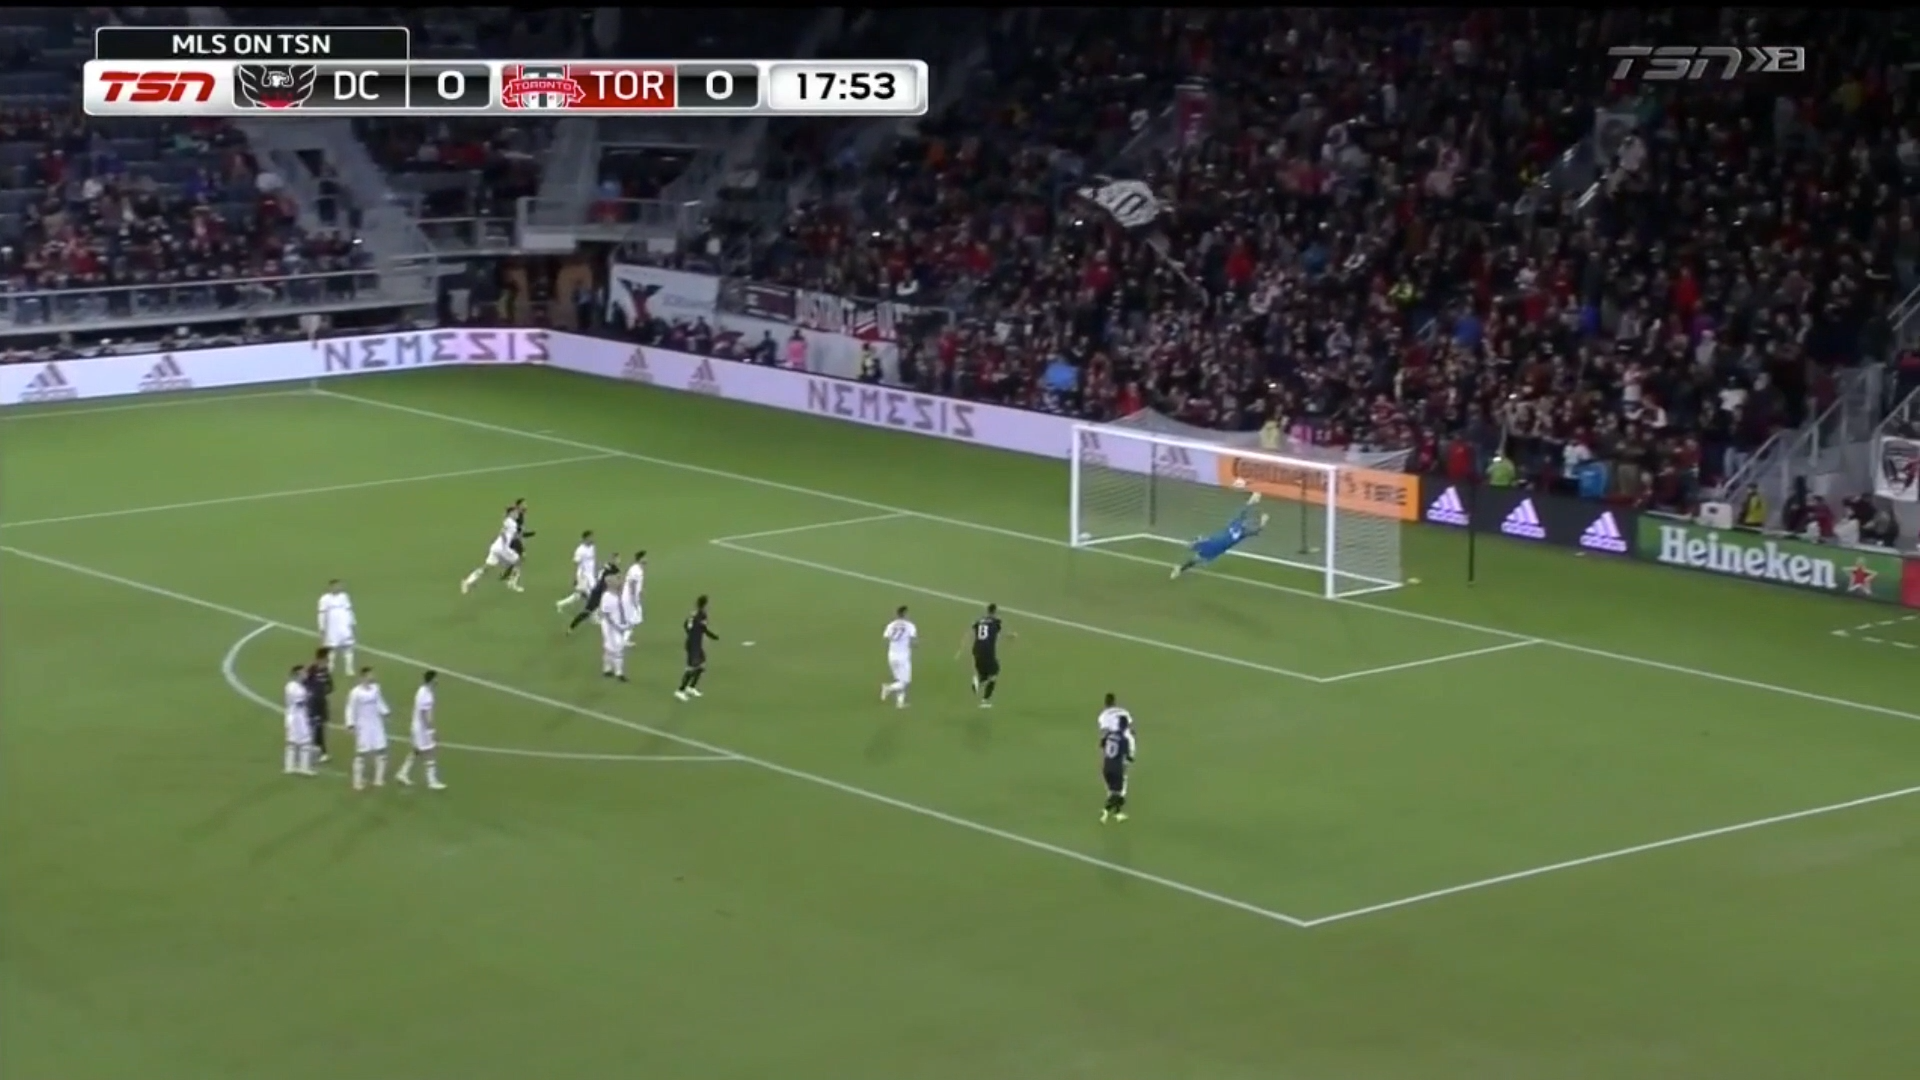 Wayne Rooney scores another stunning goal for DC United